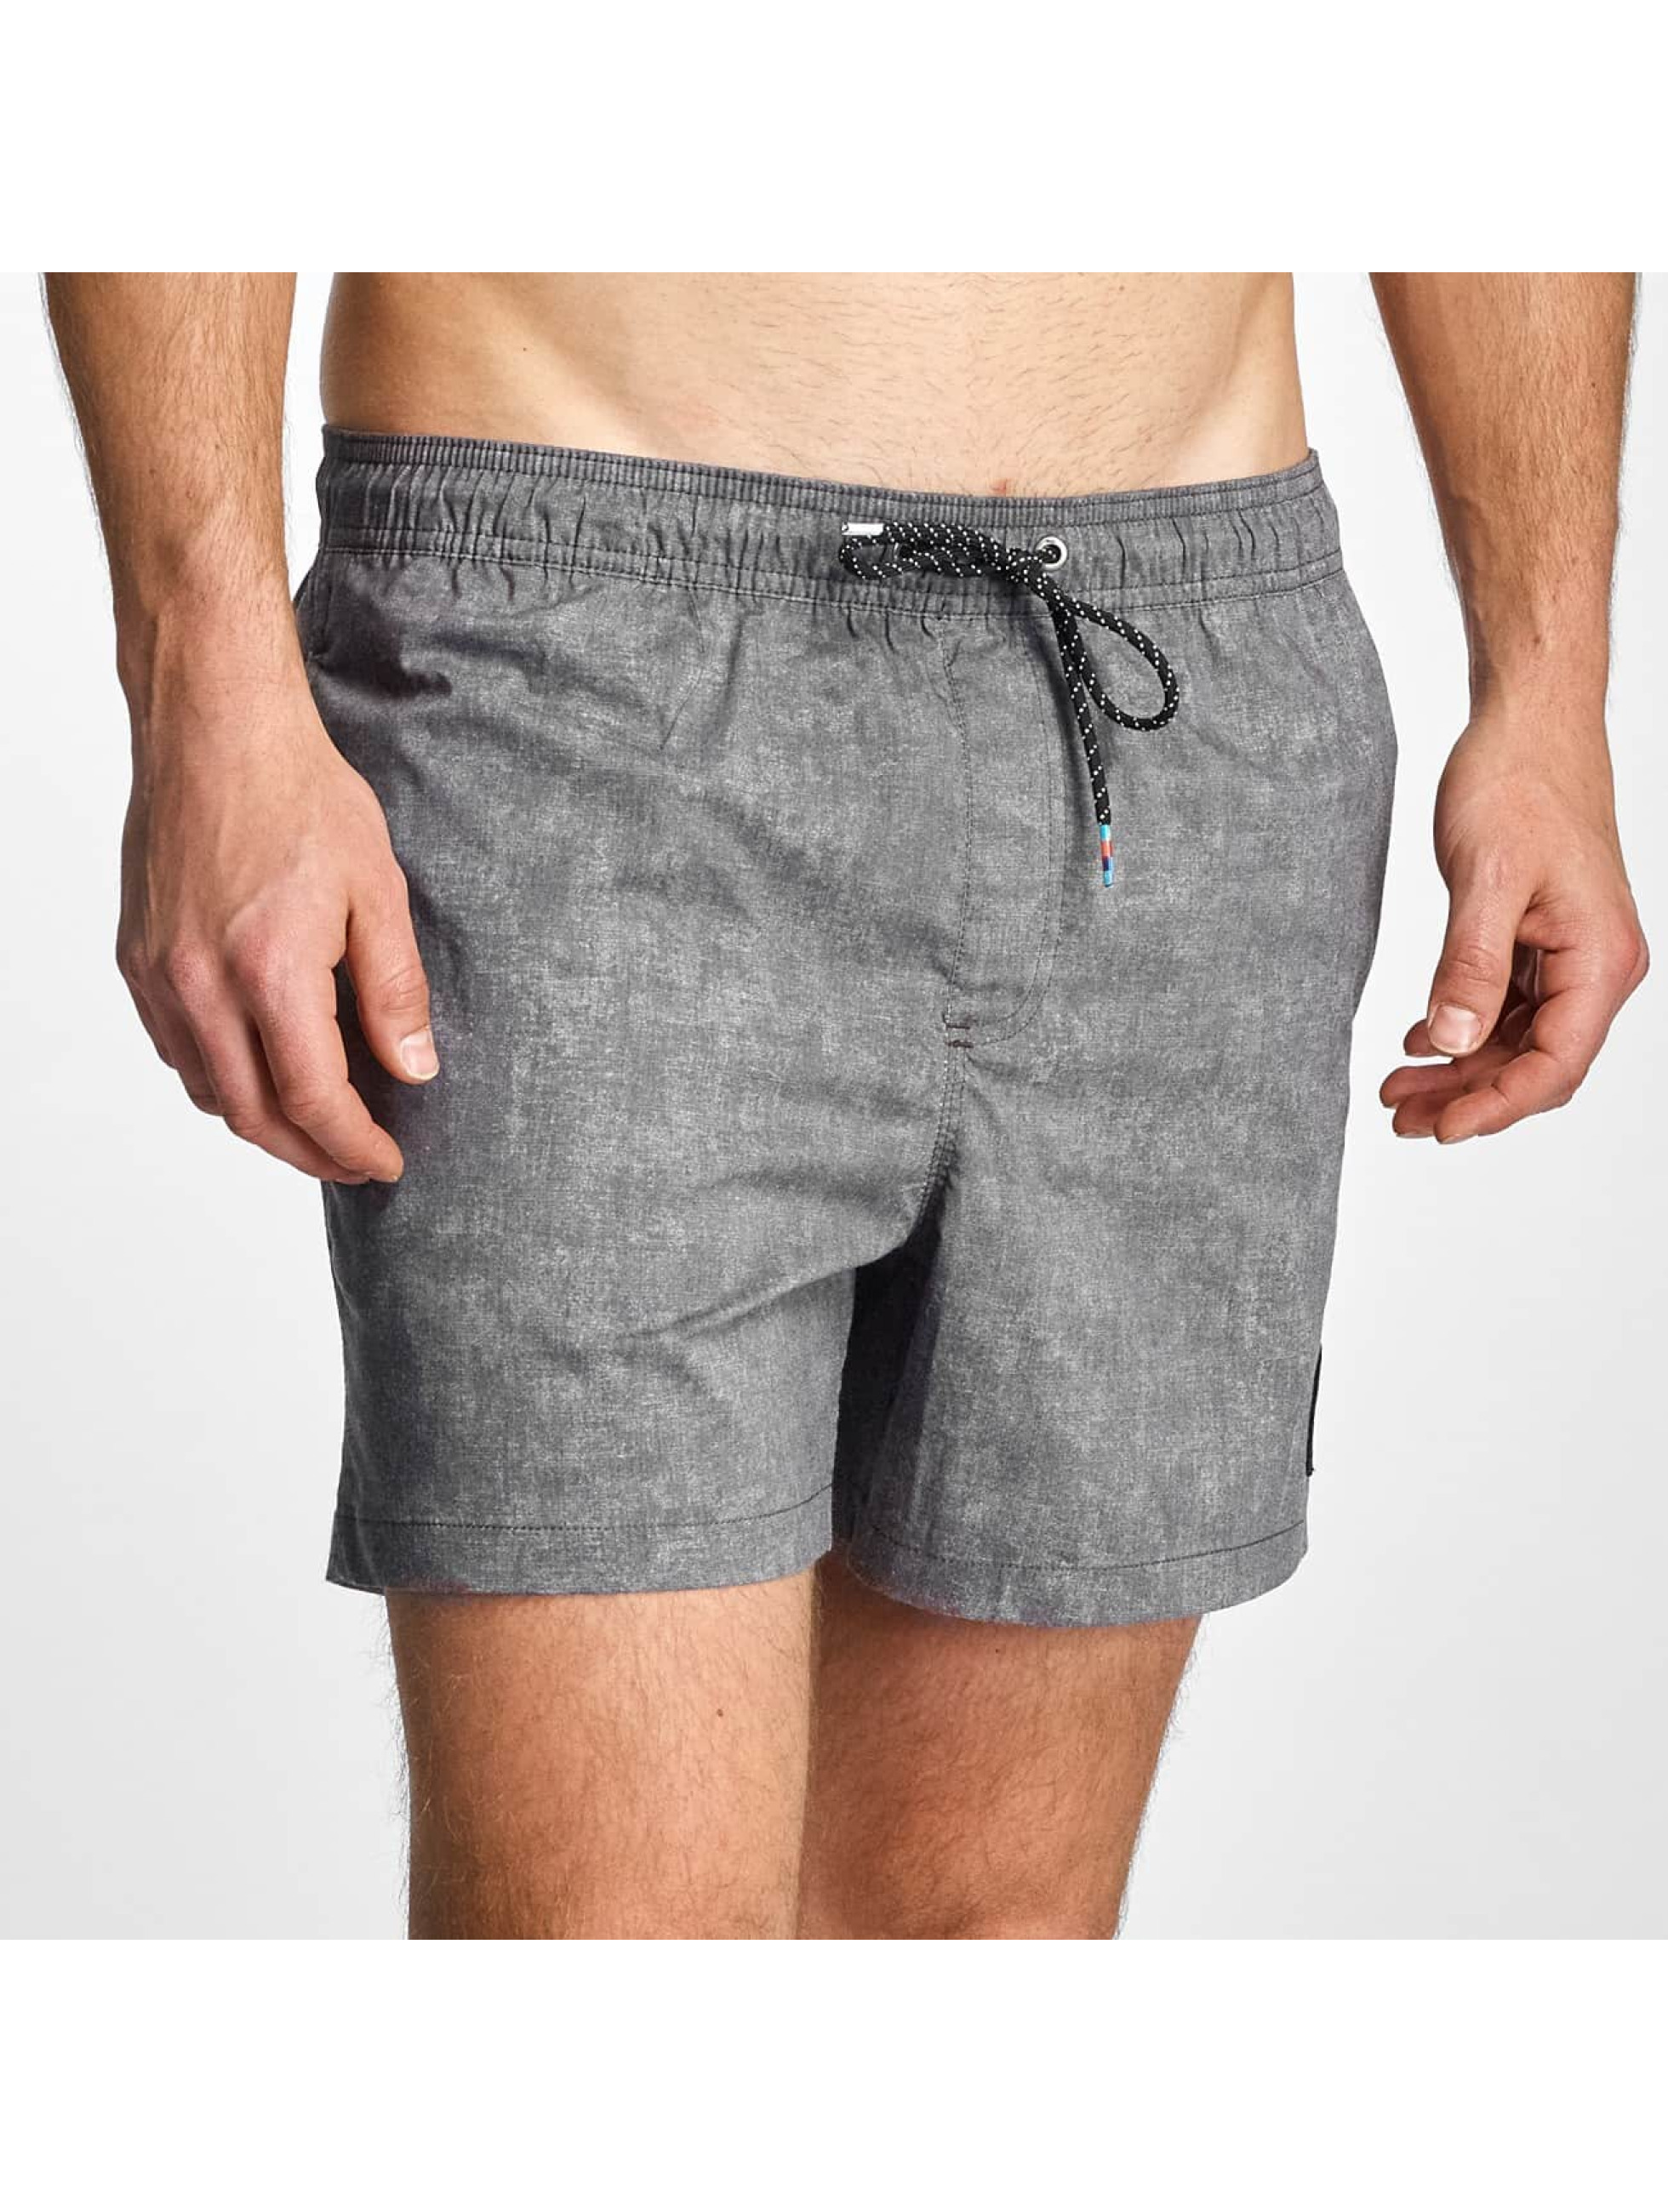 Quiksilver Männer Badeshorts Acid Volley 15 in grau